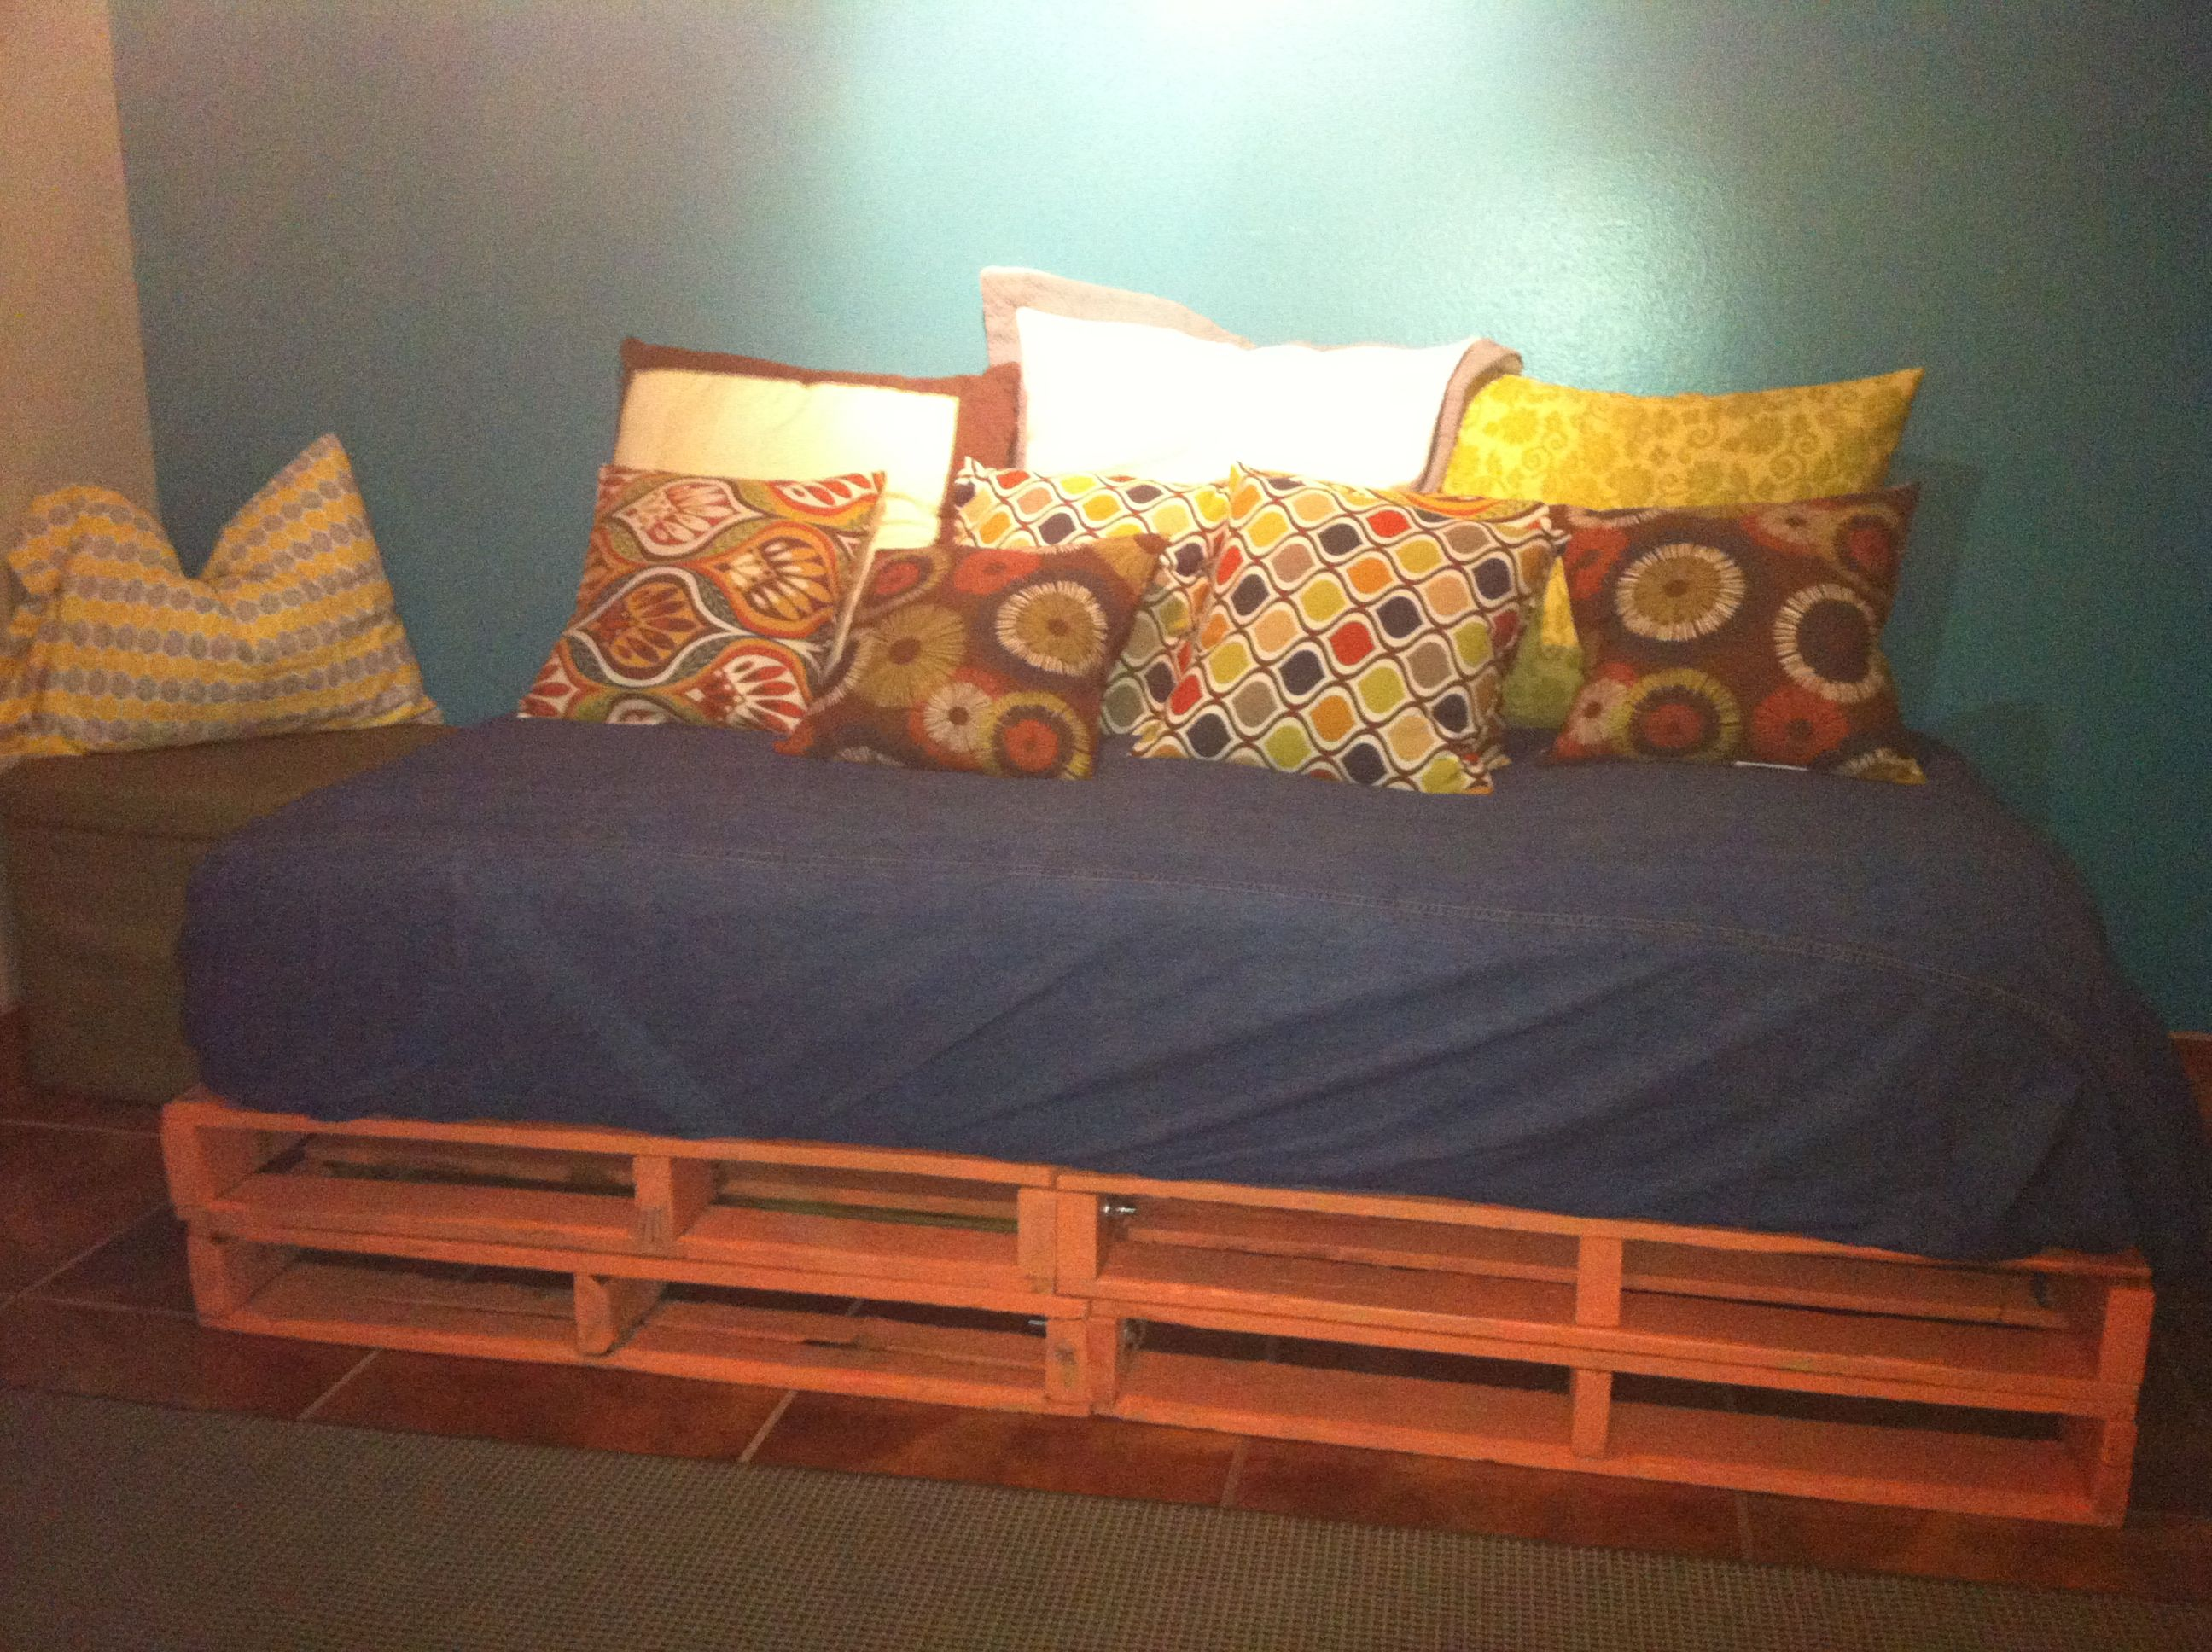 Pallet Bed Sofa Made With 4 Pallets Bolted Together